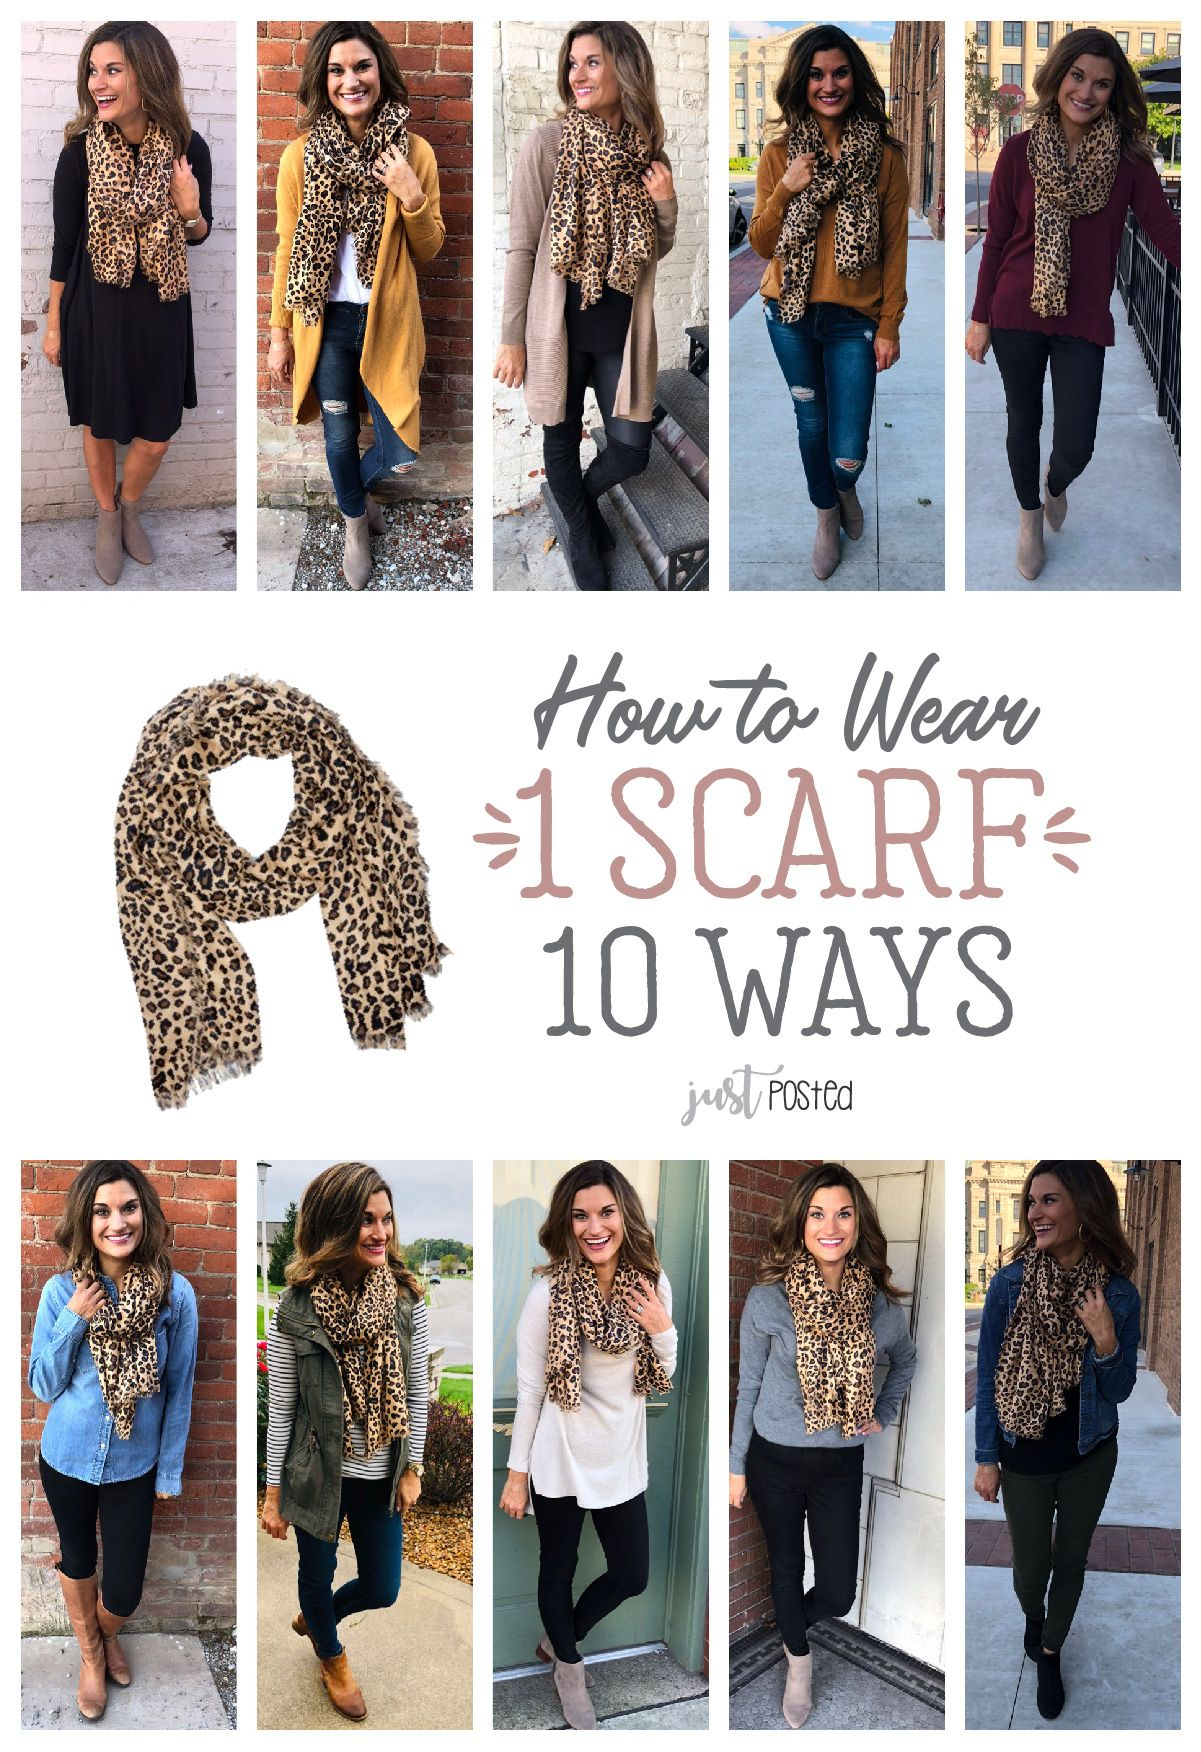 20 Outfits With Leopard Scarves To Try advise